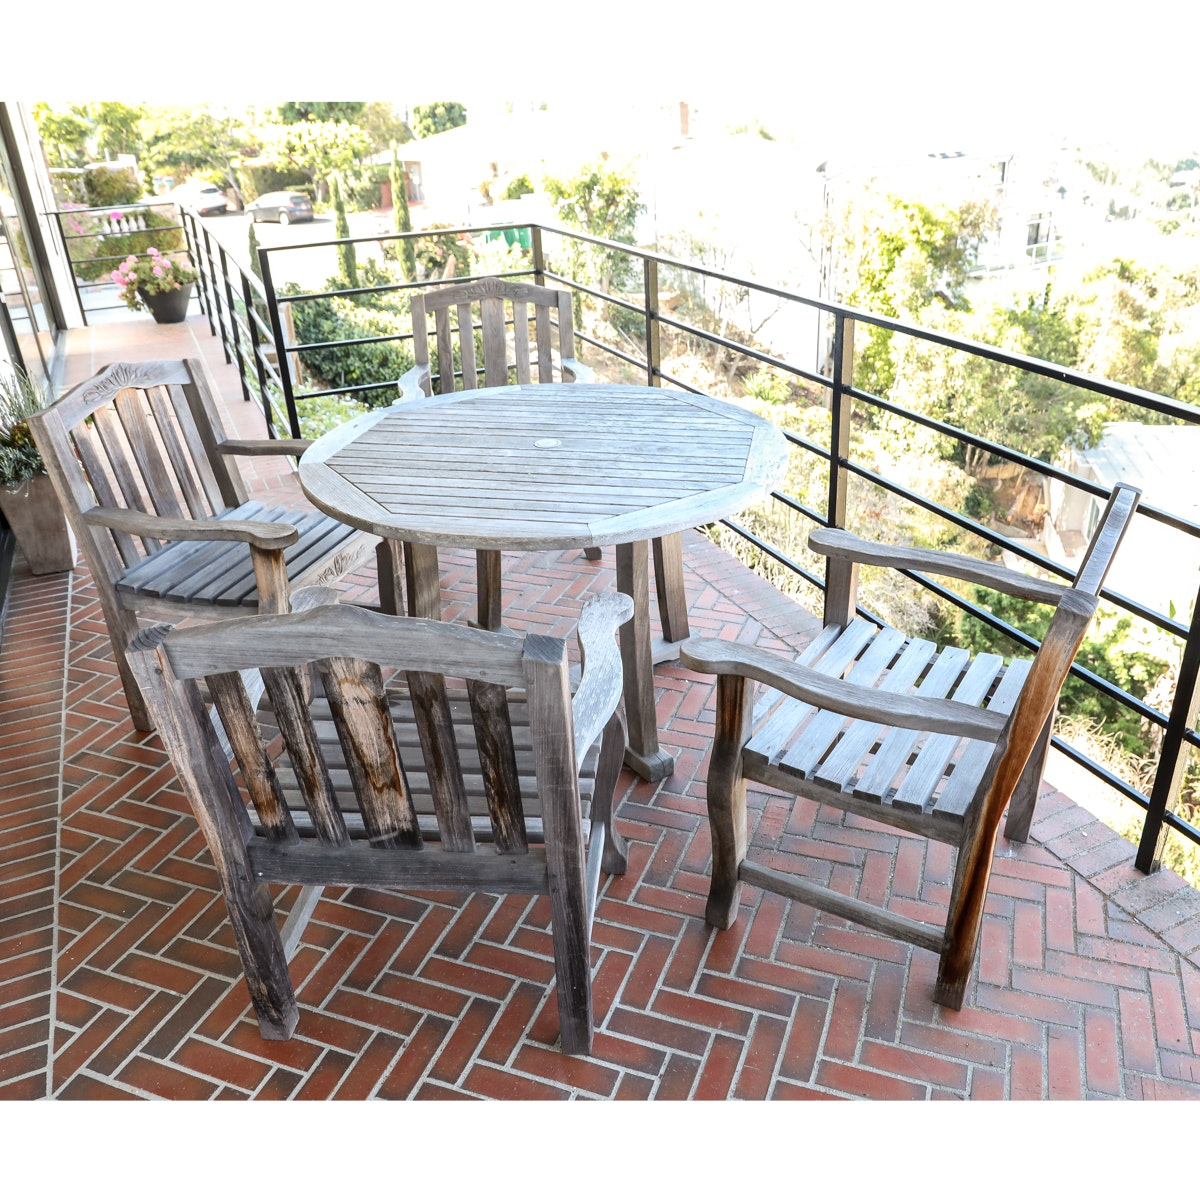 Teak Patio Table with Four Chairs